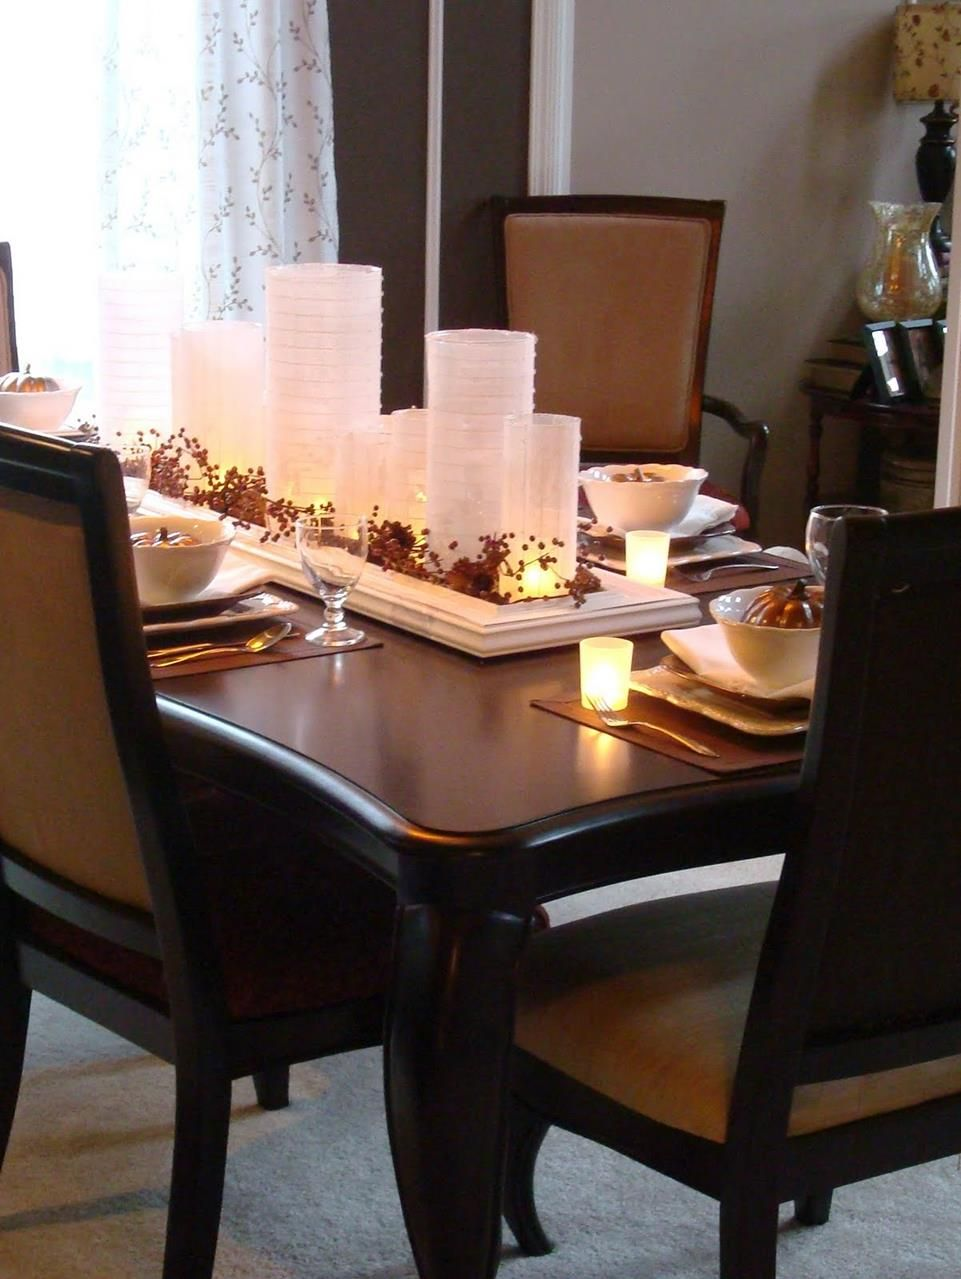 Dining room table centrepiece ideas   -  http://baspino.com/dining-room-table-centrepiece-ideas/  http://baspino.com/wp-content/uploads/2015/03/Dining-room-table-centrepiece-ideas.jpg